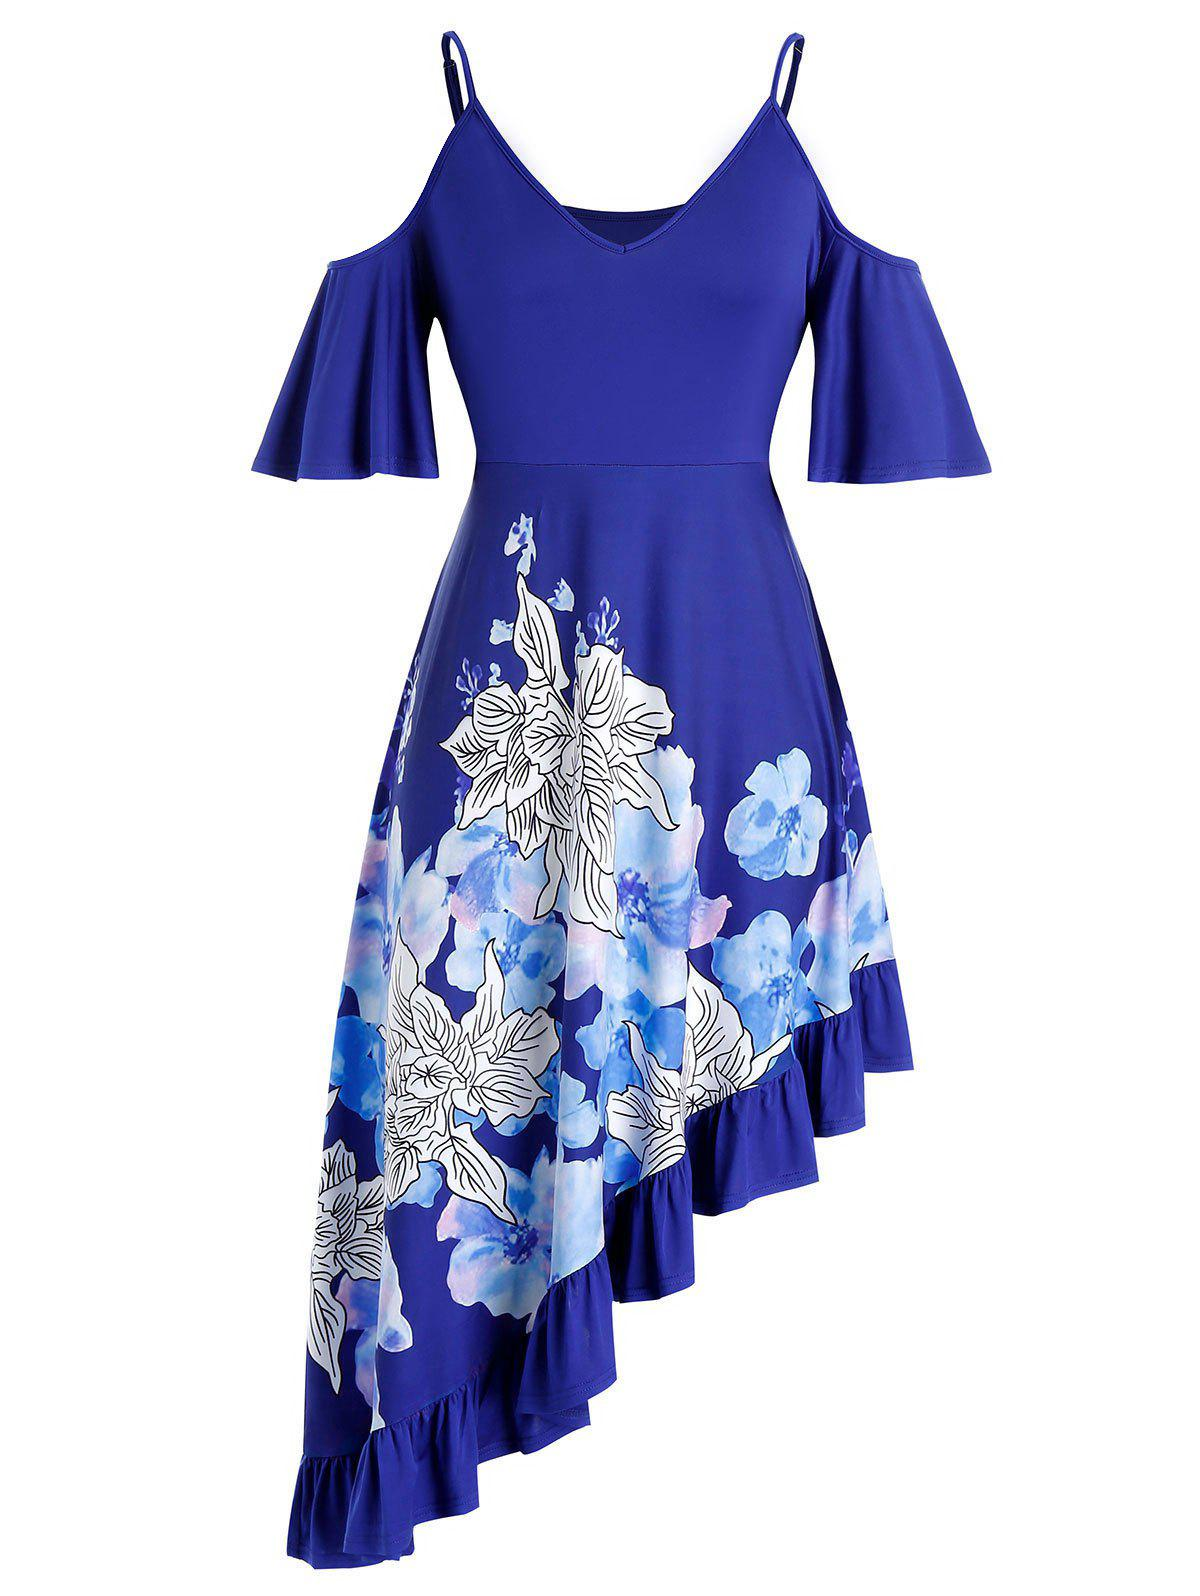 Plus Size Flower Open Shoulder Asymmetrical Flounce Dress - BLUEBERRY BLUE 4X